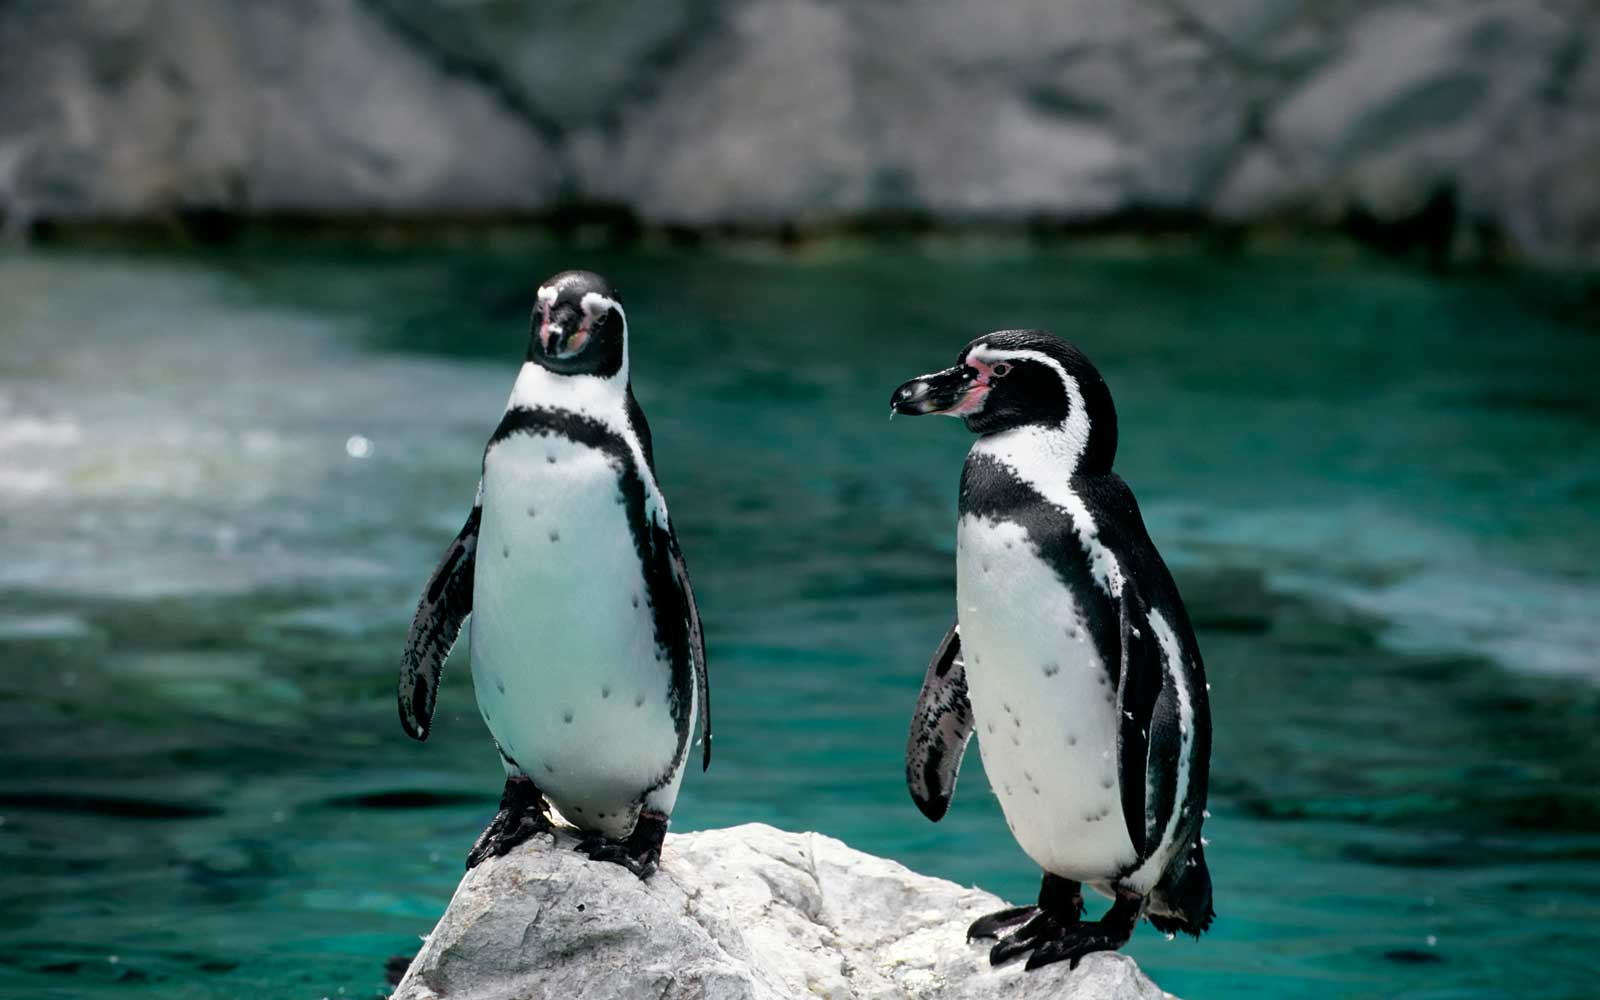 6 Inflatable Penguins Were a Substitute for the Real Thing at This Zoo